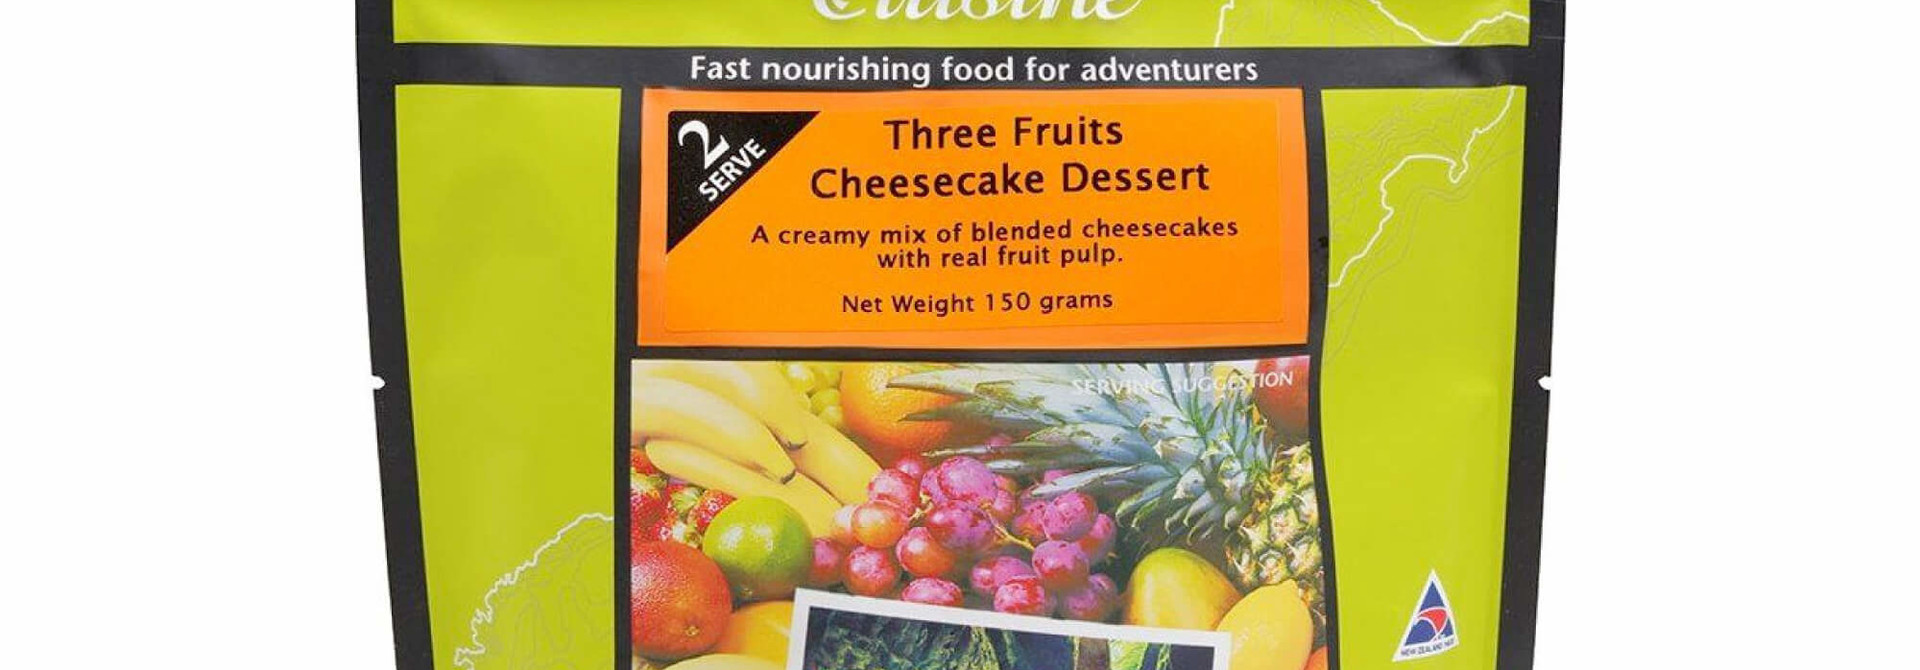 Three Fruits Cheesecake